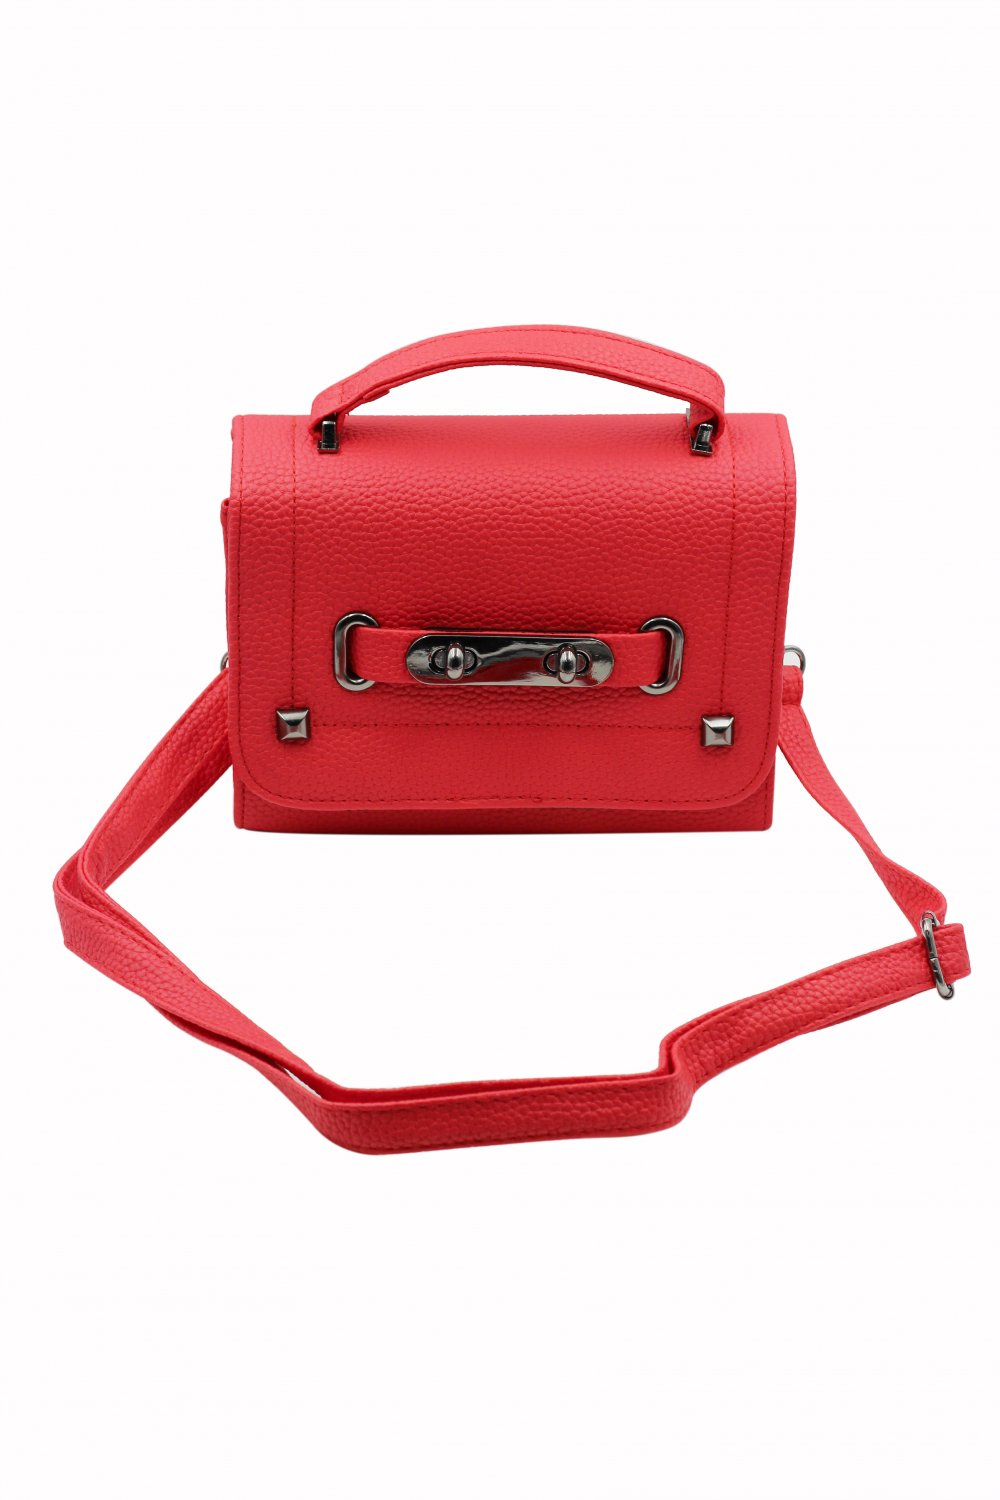 Pebble lady removable small leather red handbag